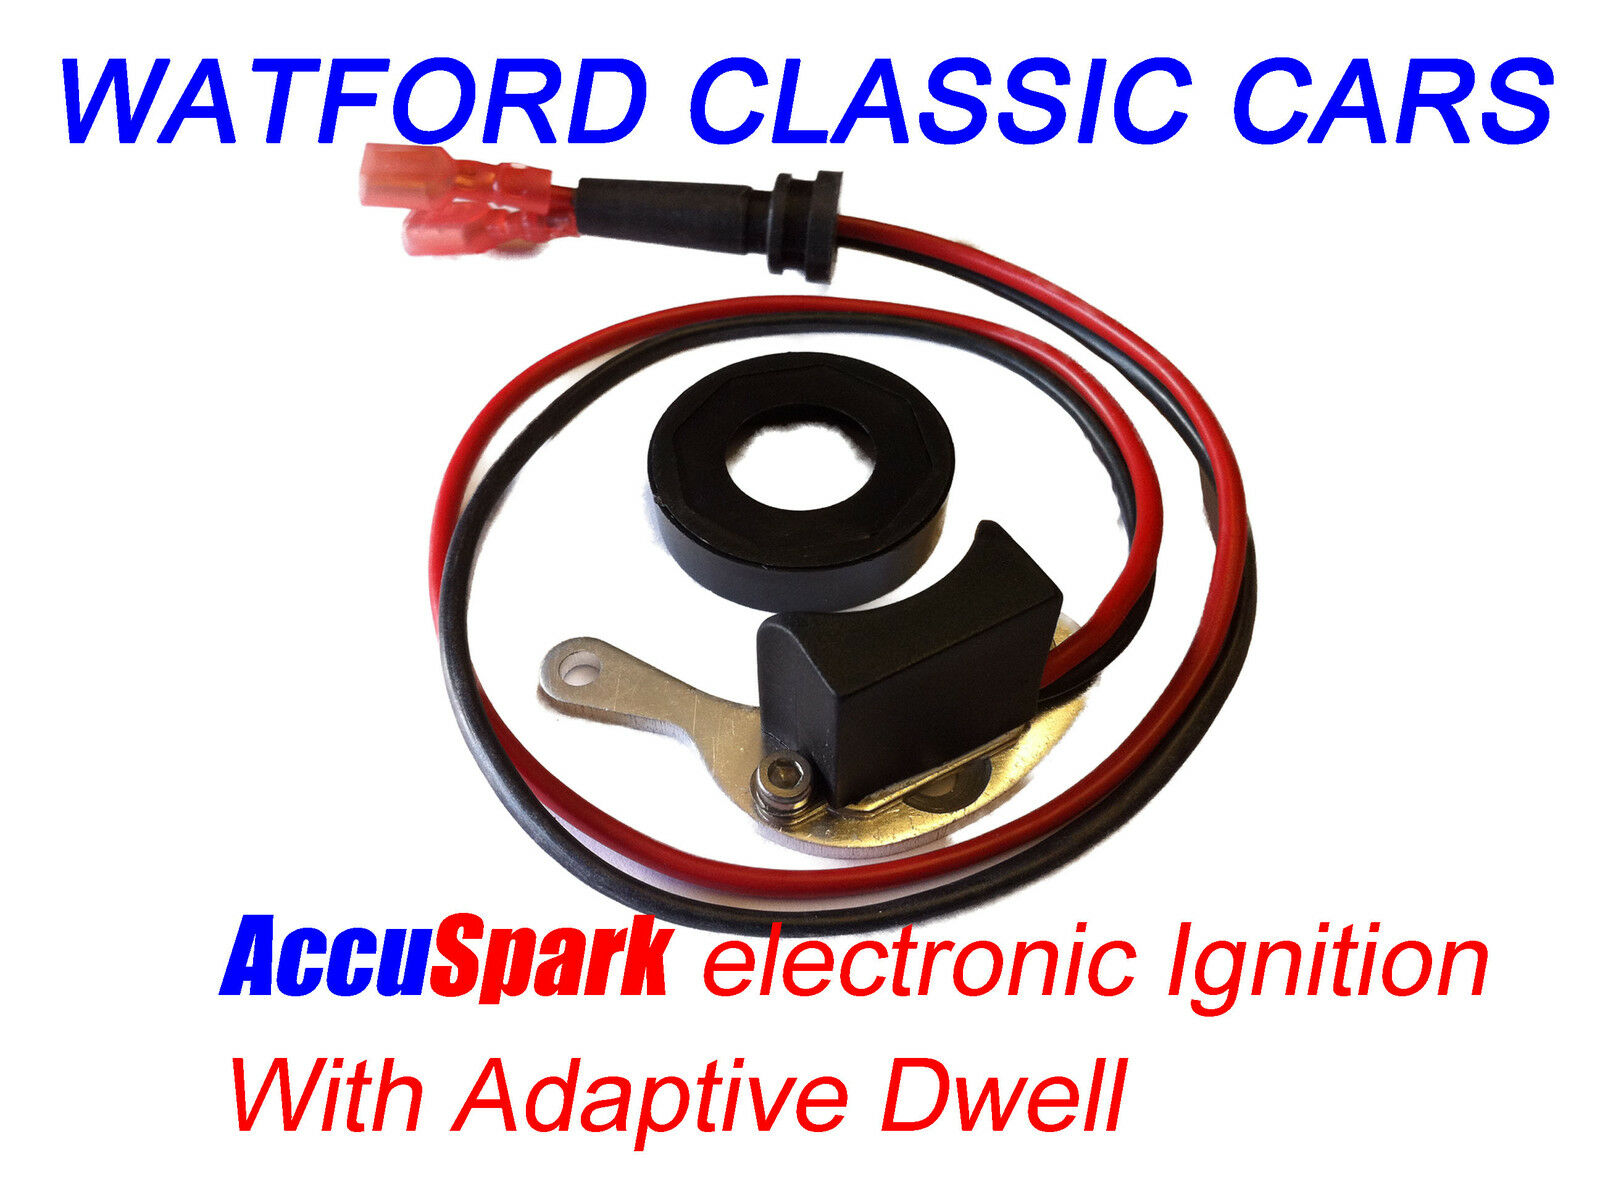 car parts hemel hempstead with Accuspark Vw Electronic Ignition For Bosch 009 And 230502564070 on The Parts Alliance And Delphi Send Garages On Usa Dream Drive besides 6938555 as well What Are The Bottom Three Relays For In The Fuse Box Vectra C 2 2 Direct moreover Teroson Ms 9220 likewise 189686.